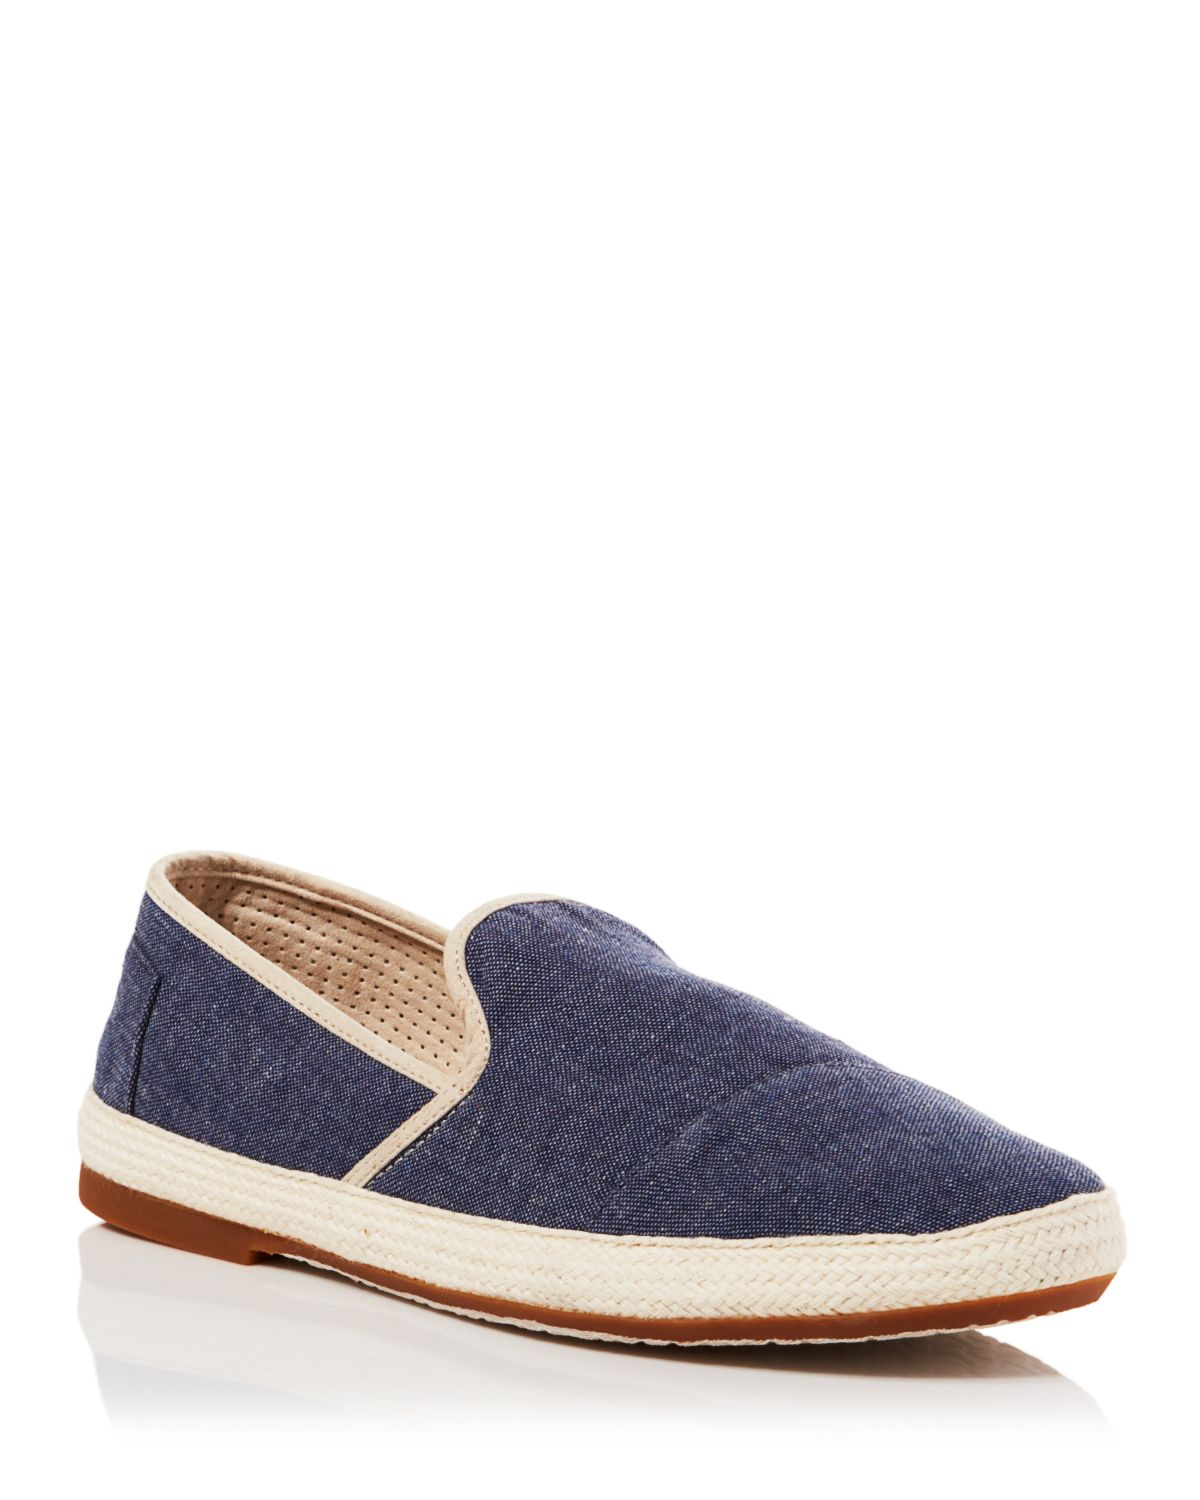 Toms Blue Chambray Espadrille Shoe